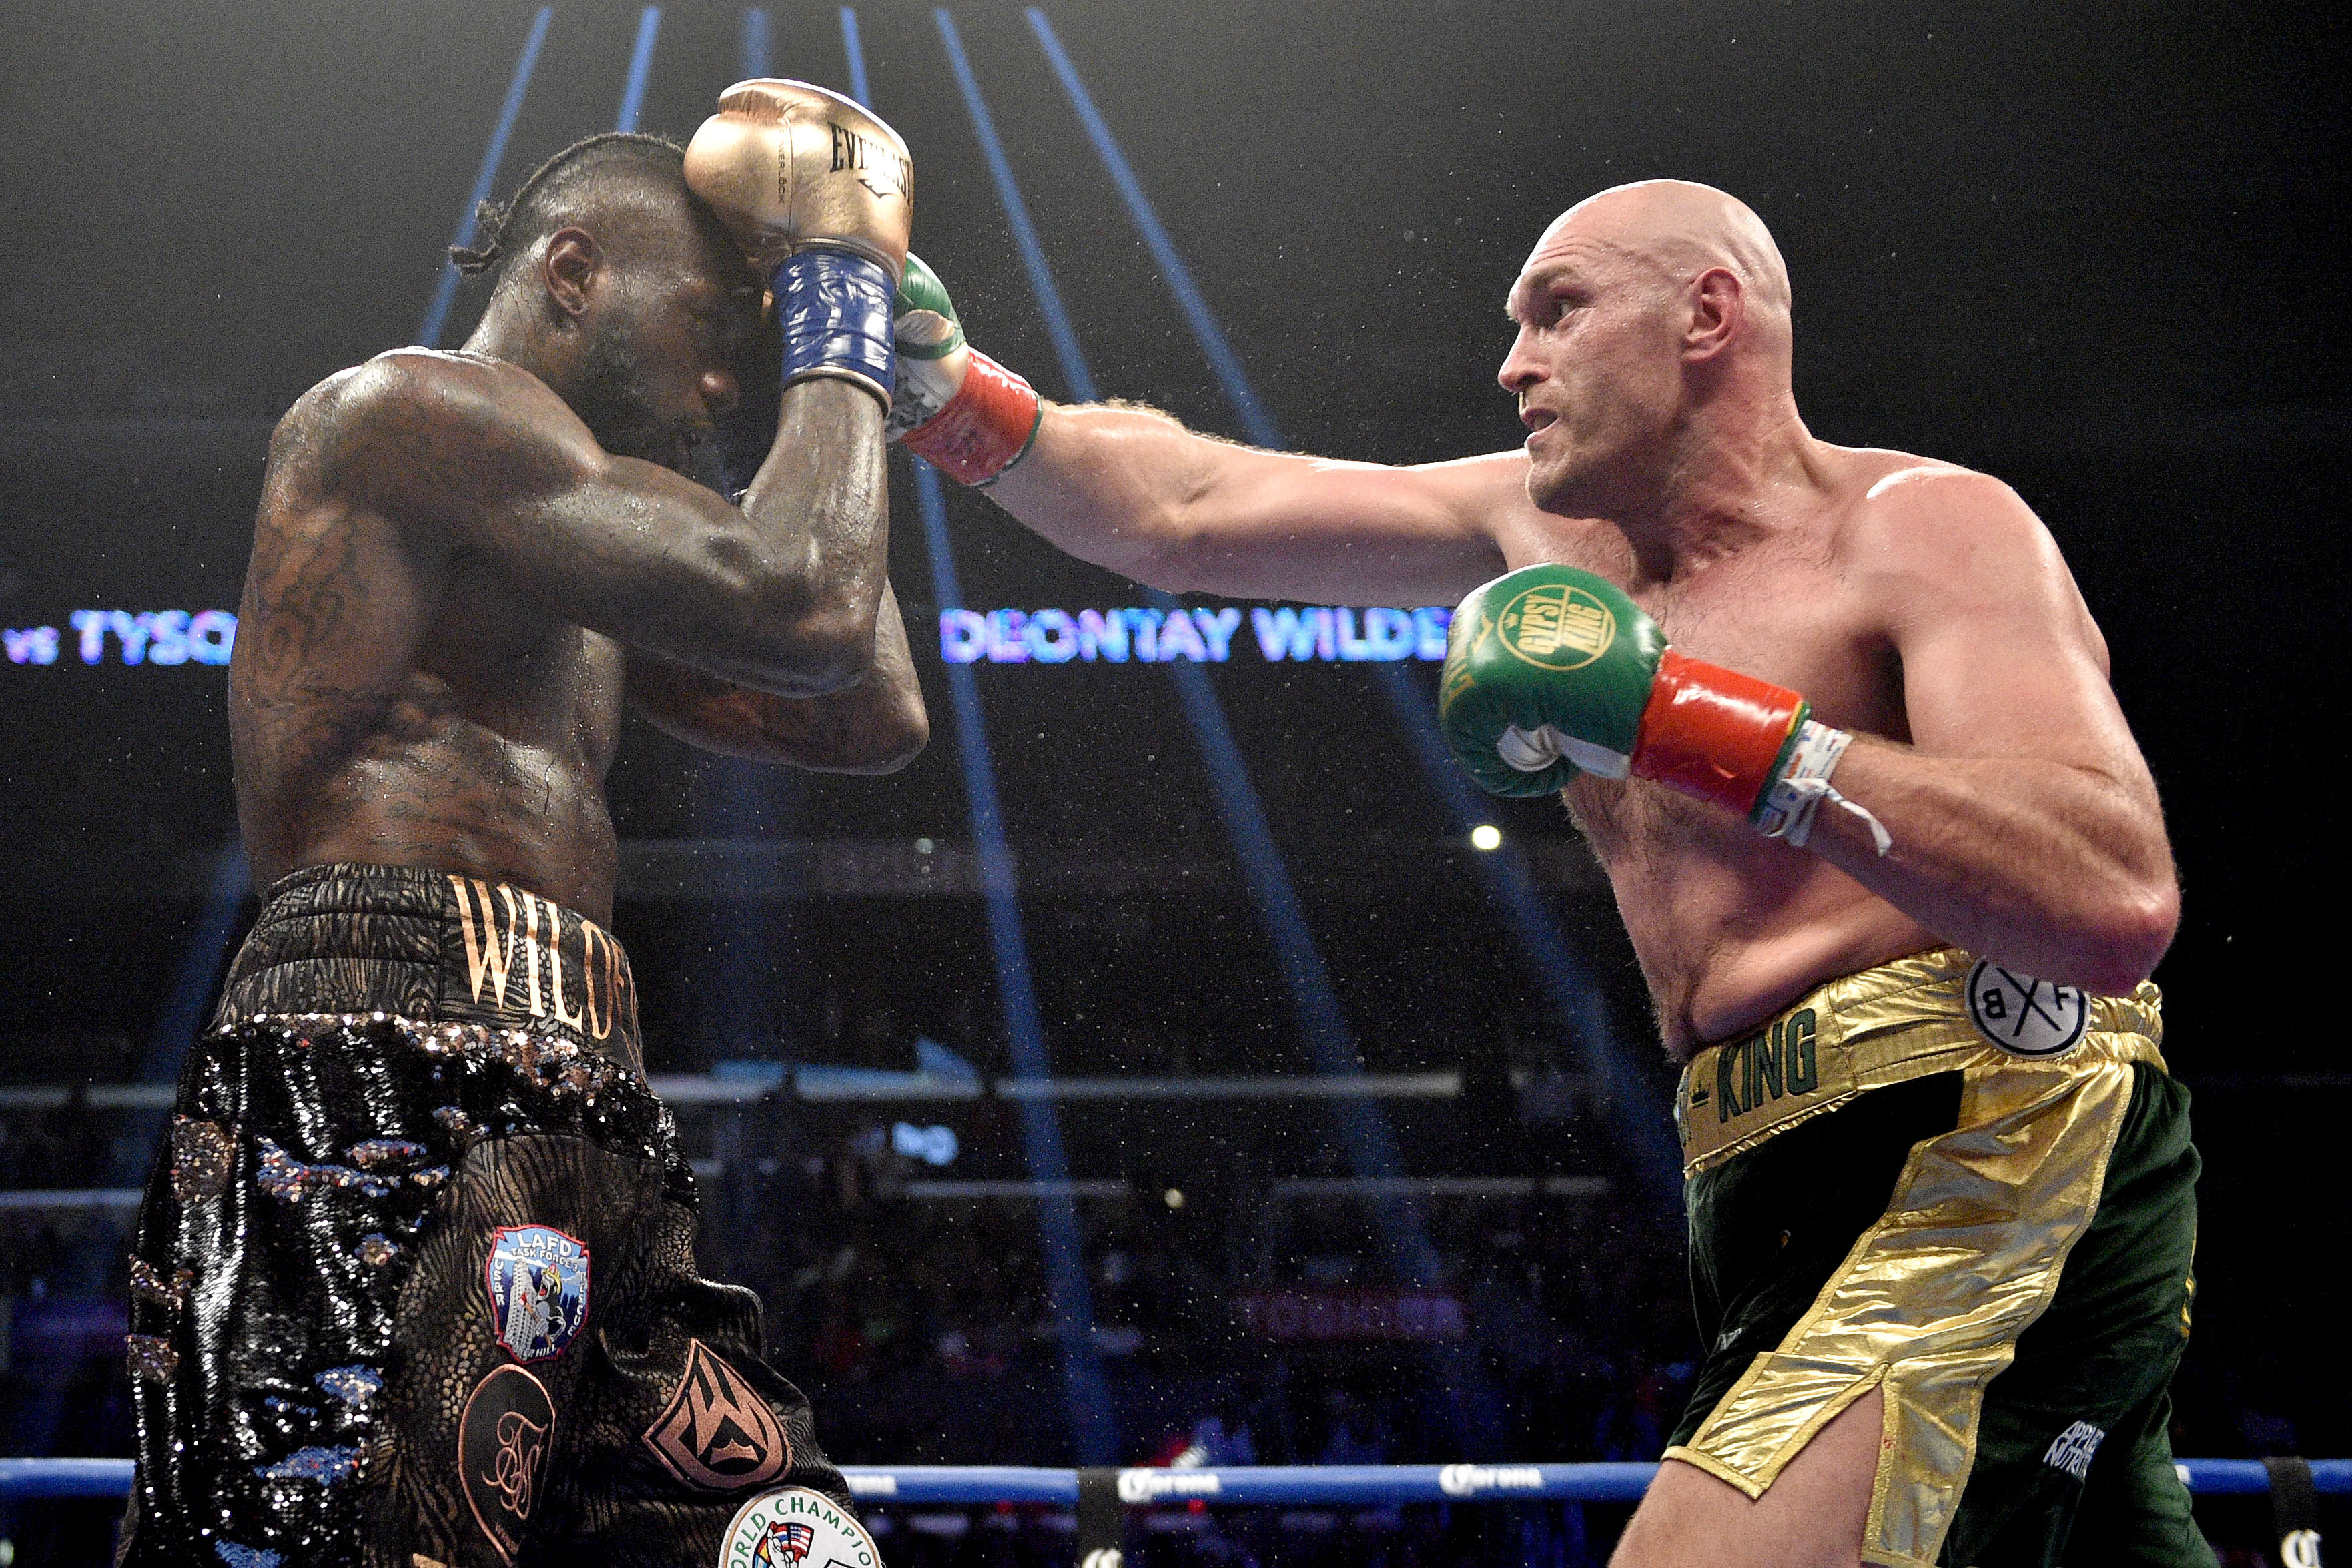 Deontay Wilder vs. Tyson Fury declared a draw